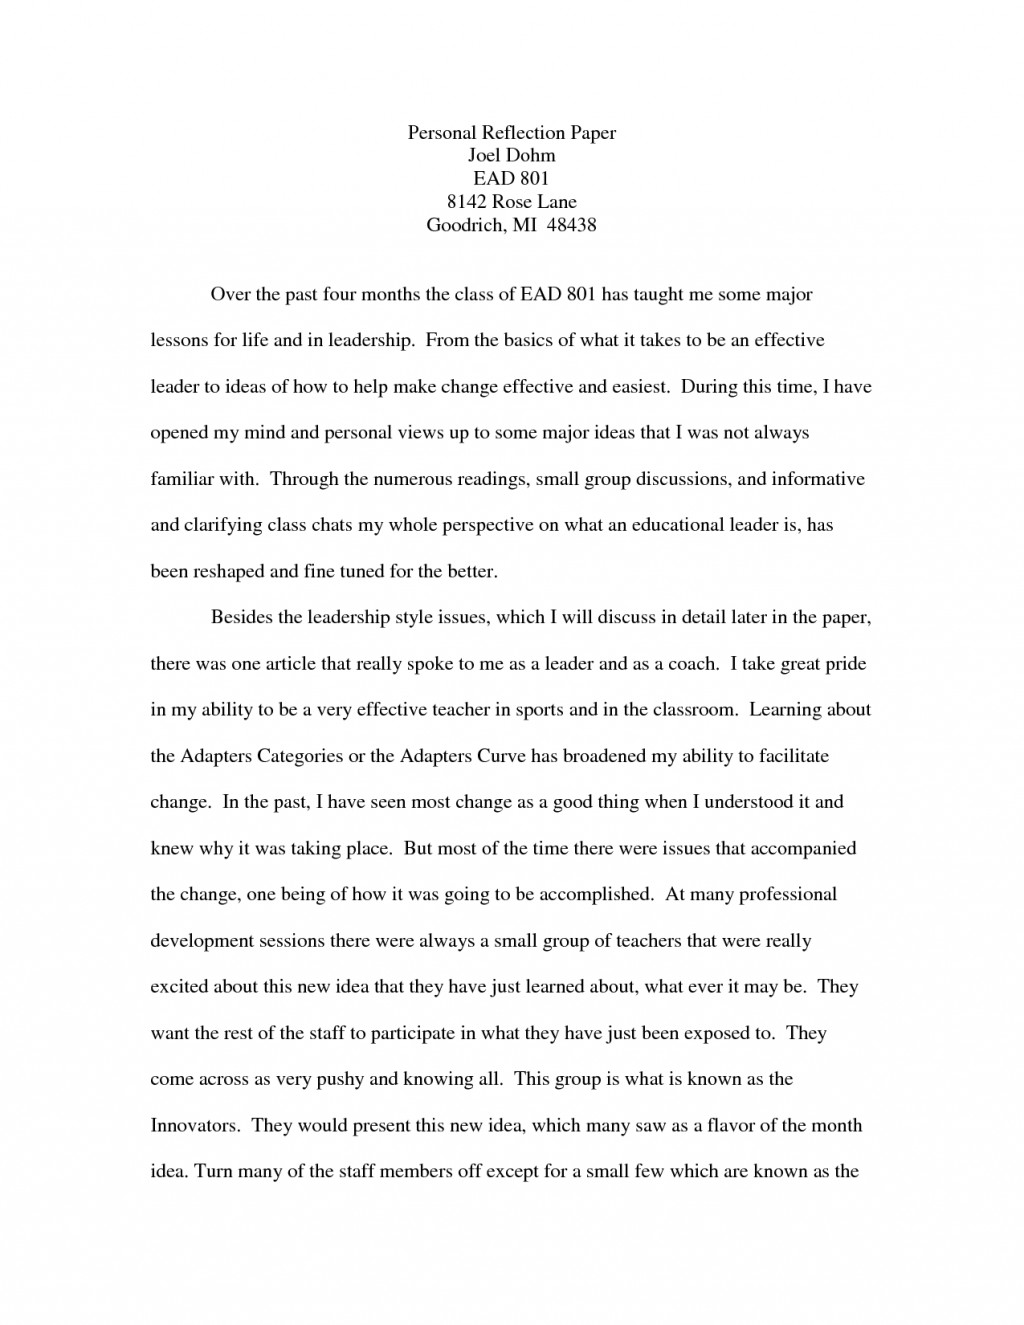 006 Personal Reflection Essay Examples Paper Example Ggnje Of Reflective Essays On Group Work For English Using Gibbs In Nursing Free Challenging Model Writing Topics Mental Stirring National 5 Anxiety Large